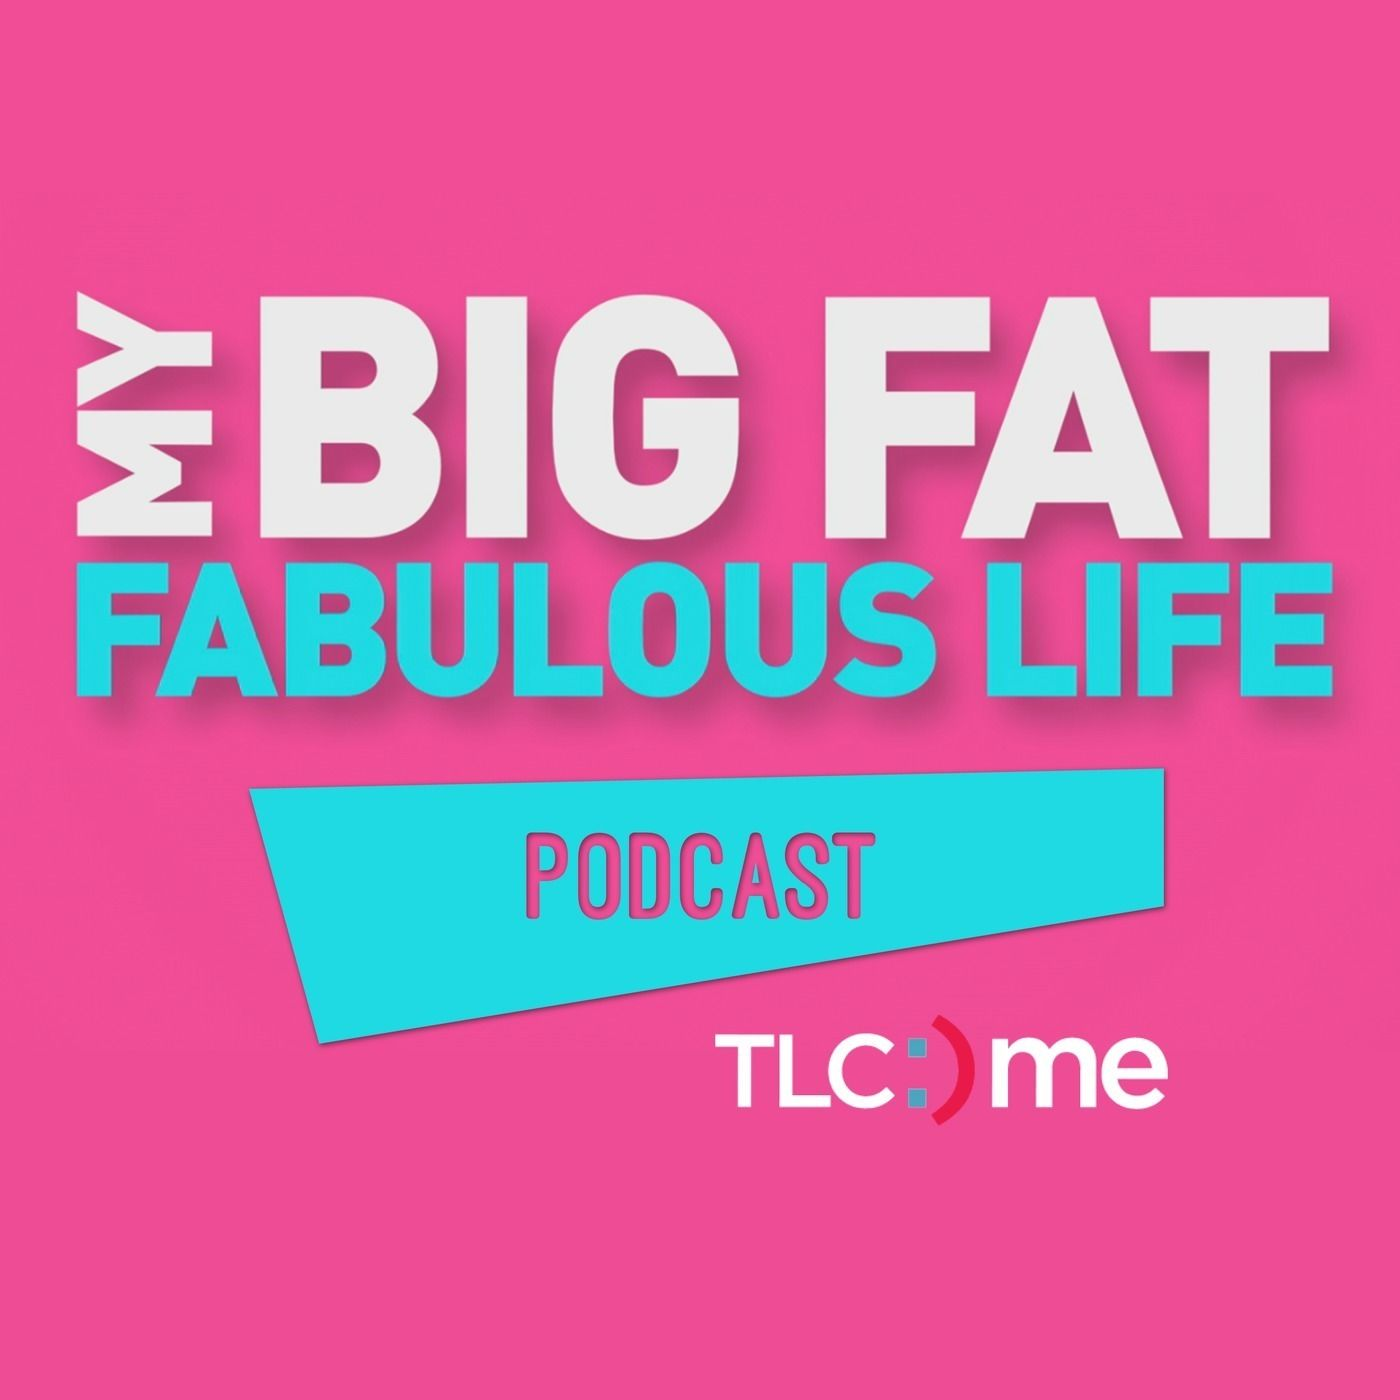 My Big Fat Fabulous Life Podcast